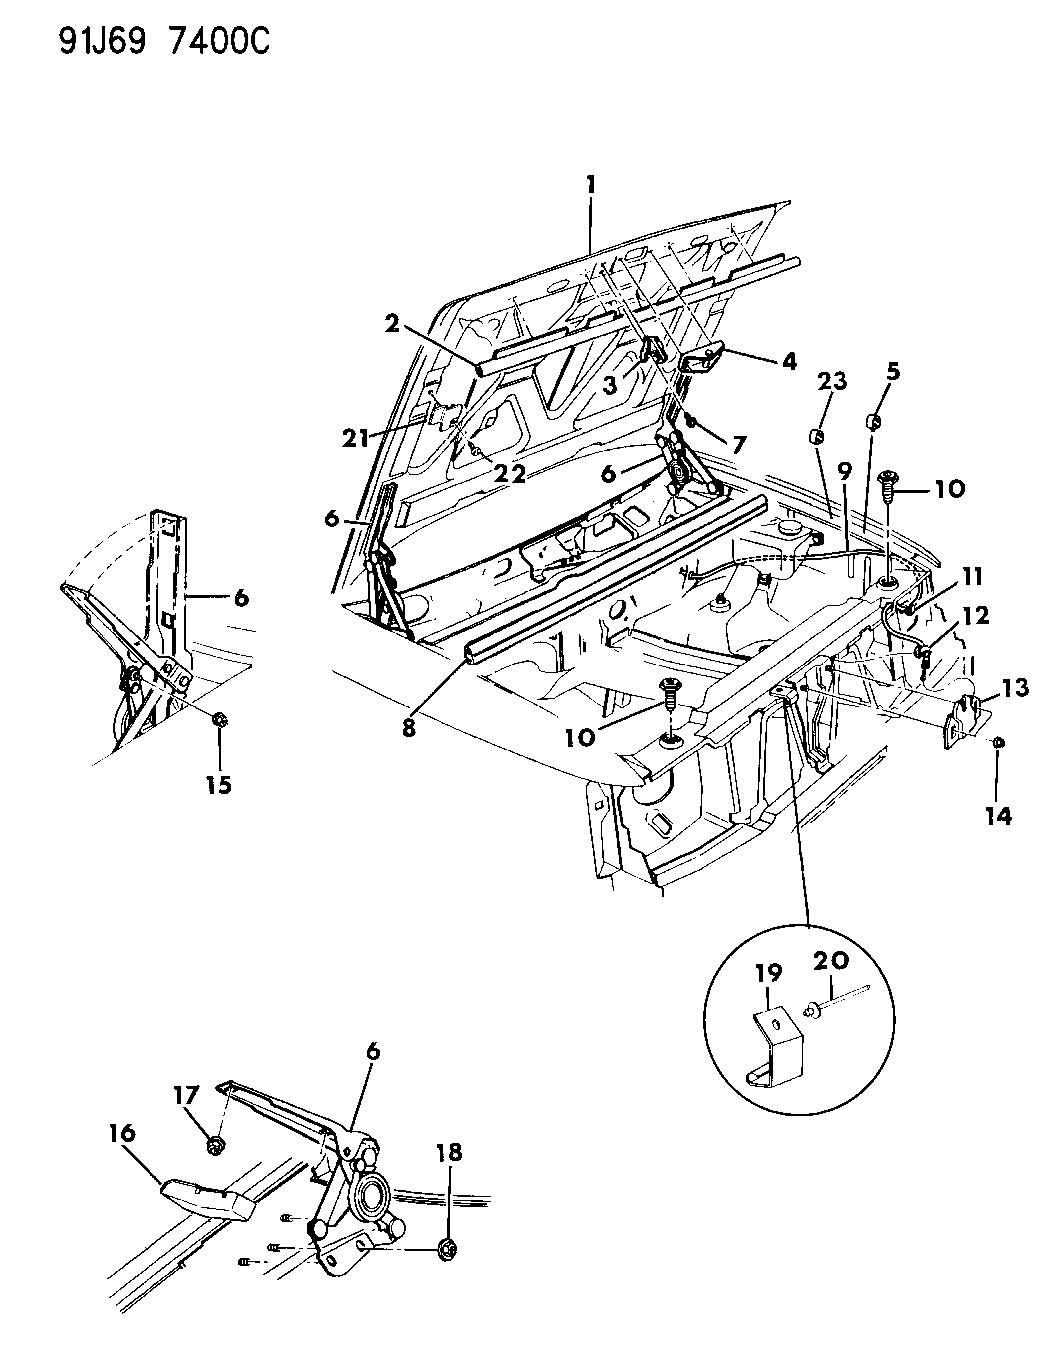 Jeep Cherokee Hood Latch Diagram Wiring Source Diagrams 55076109 On